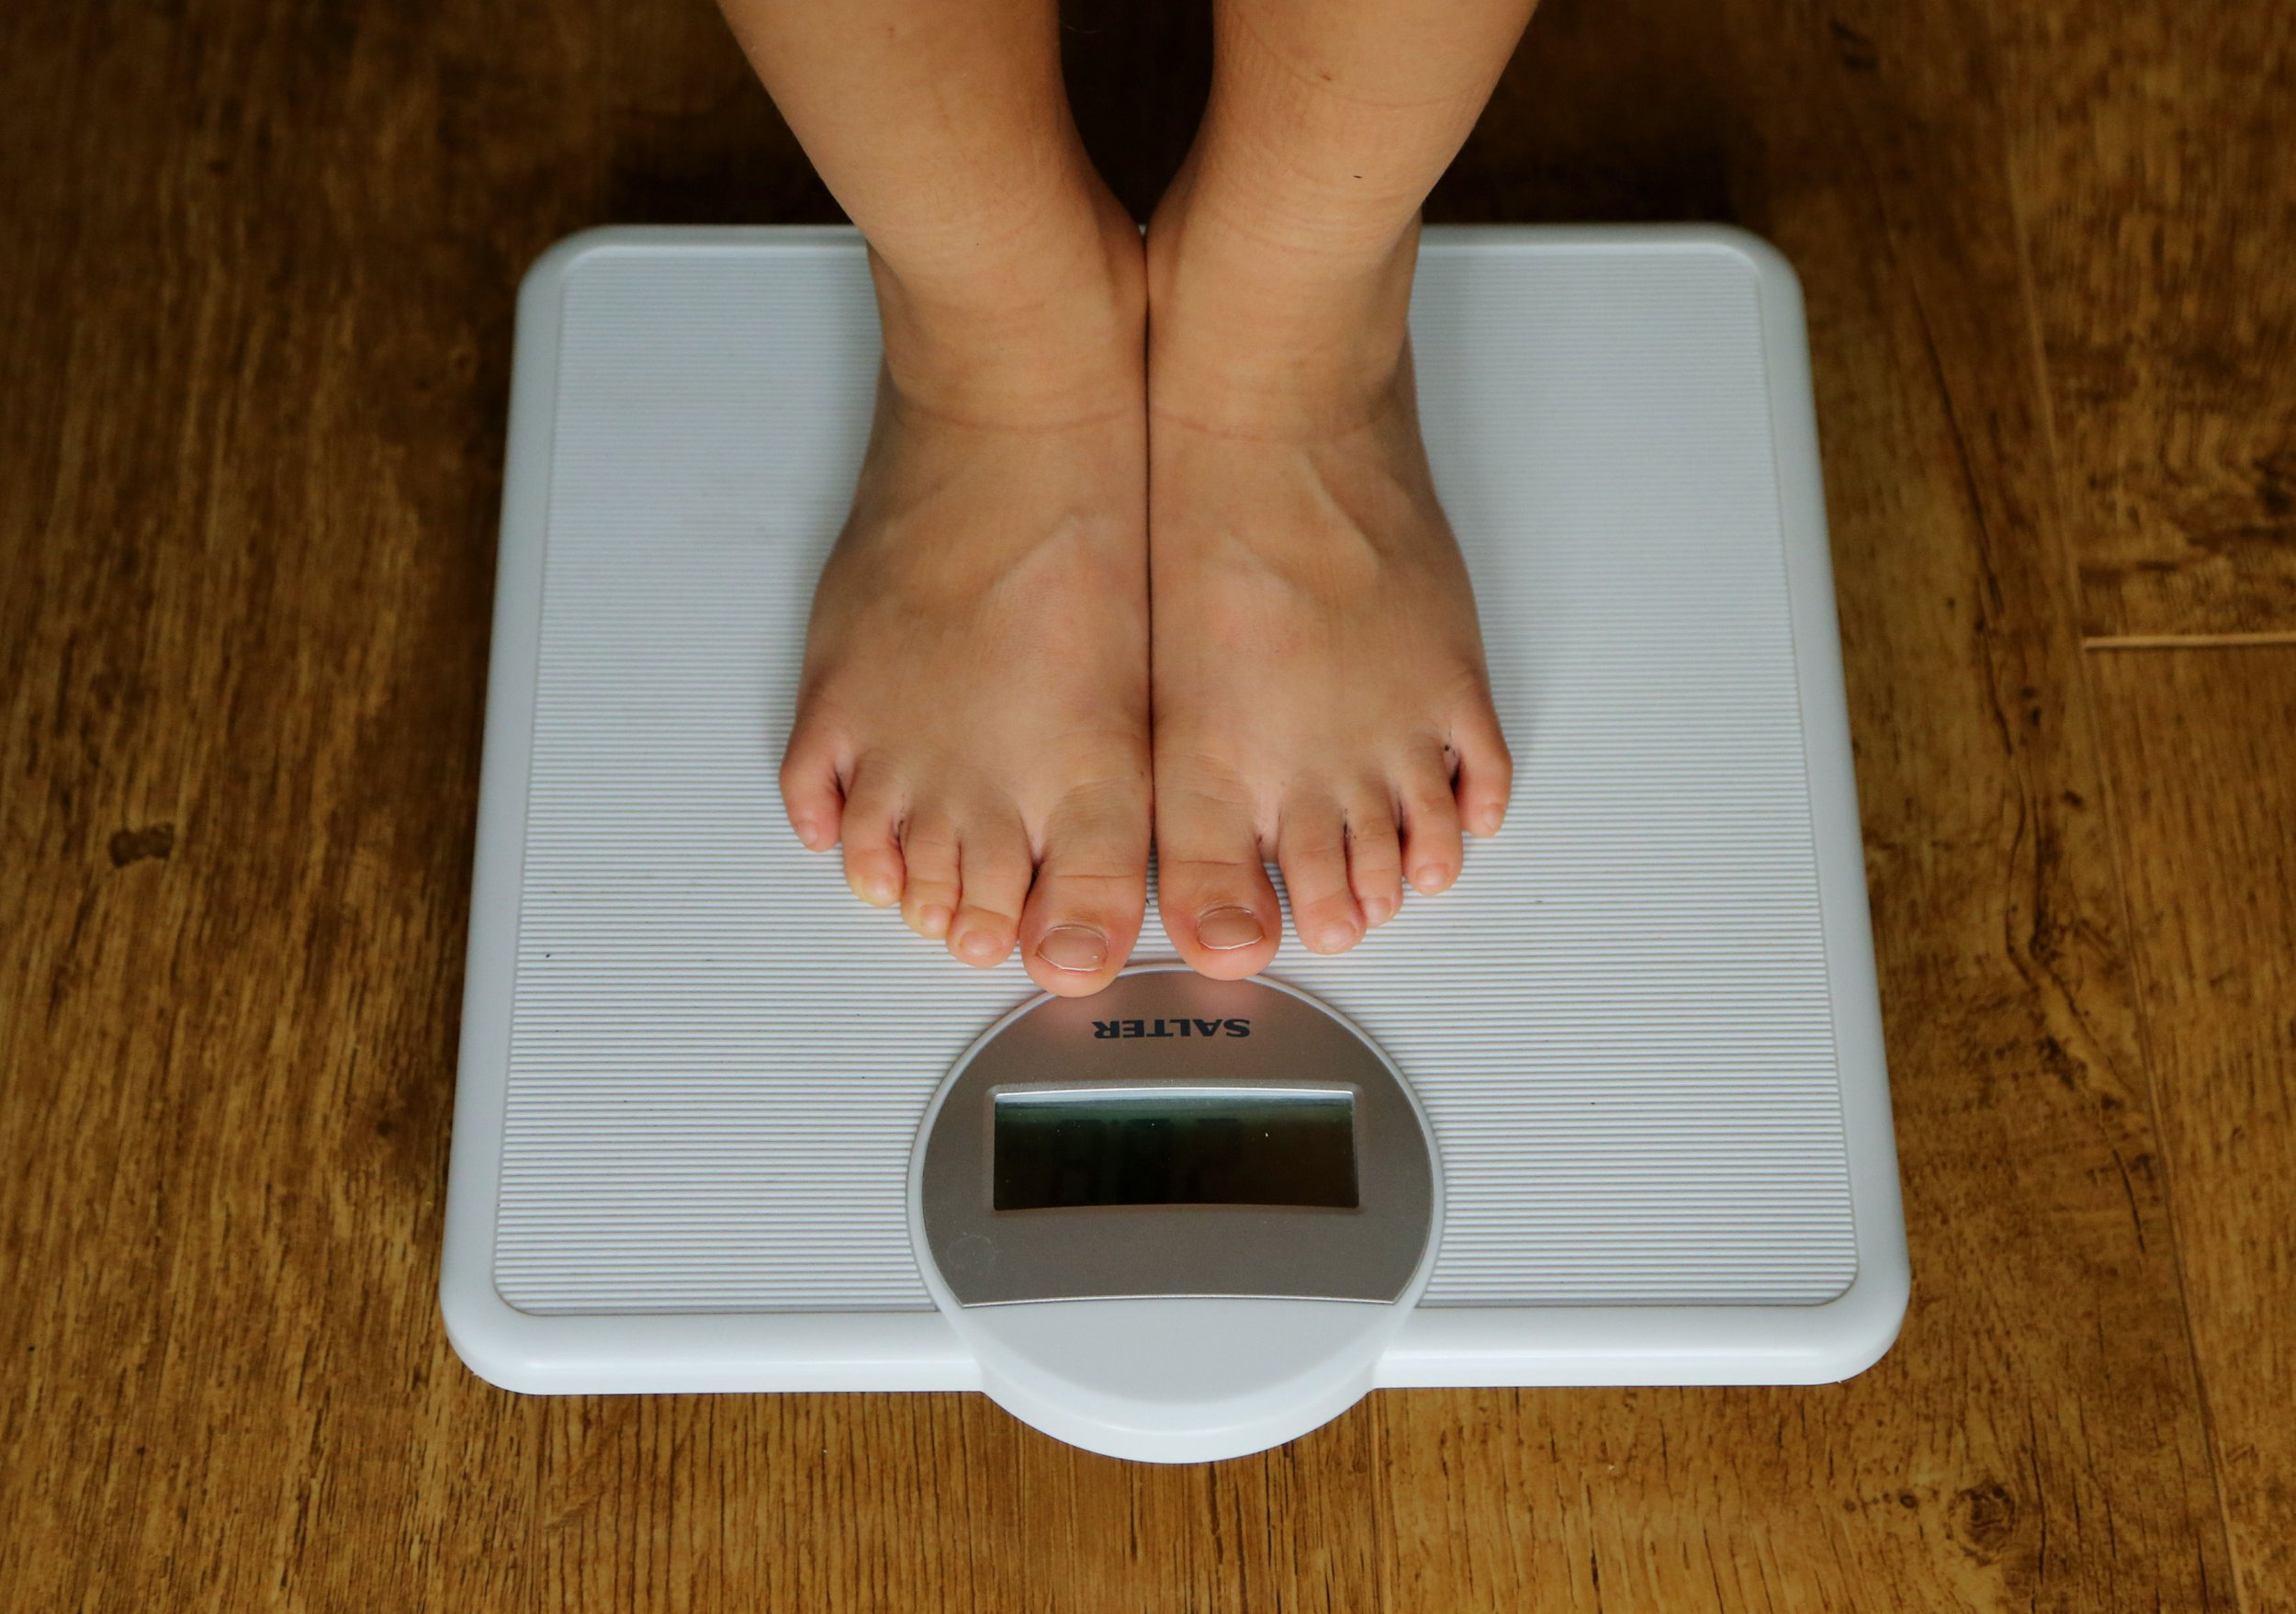 Scientists confirm that men lose weight faster than women and it's not fair